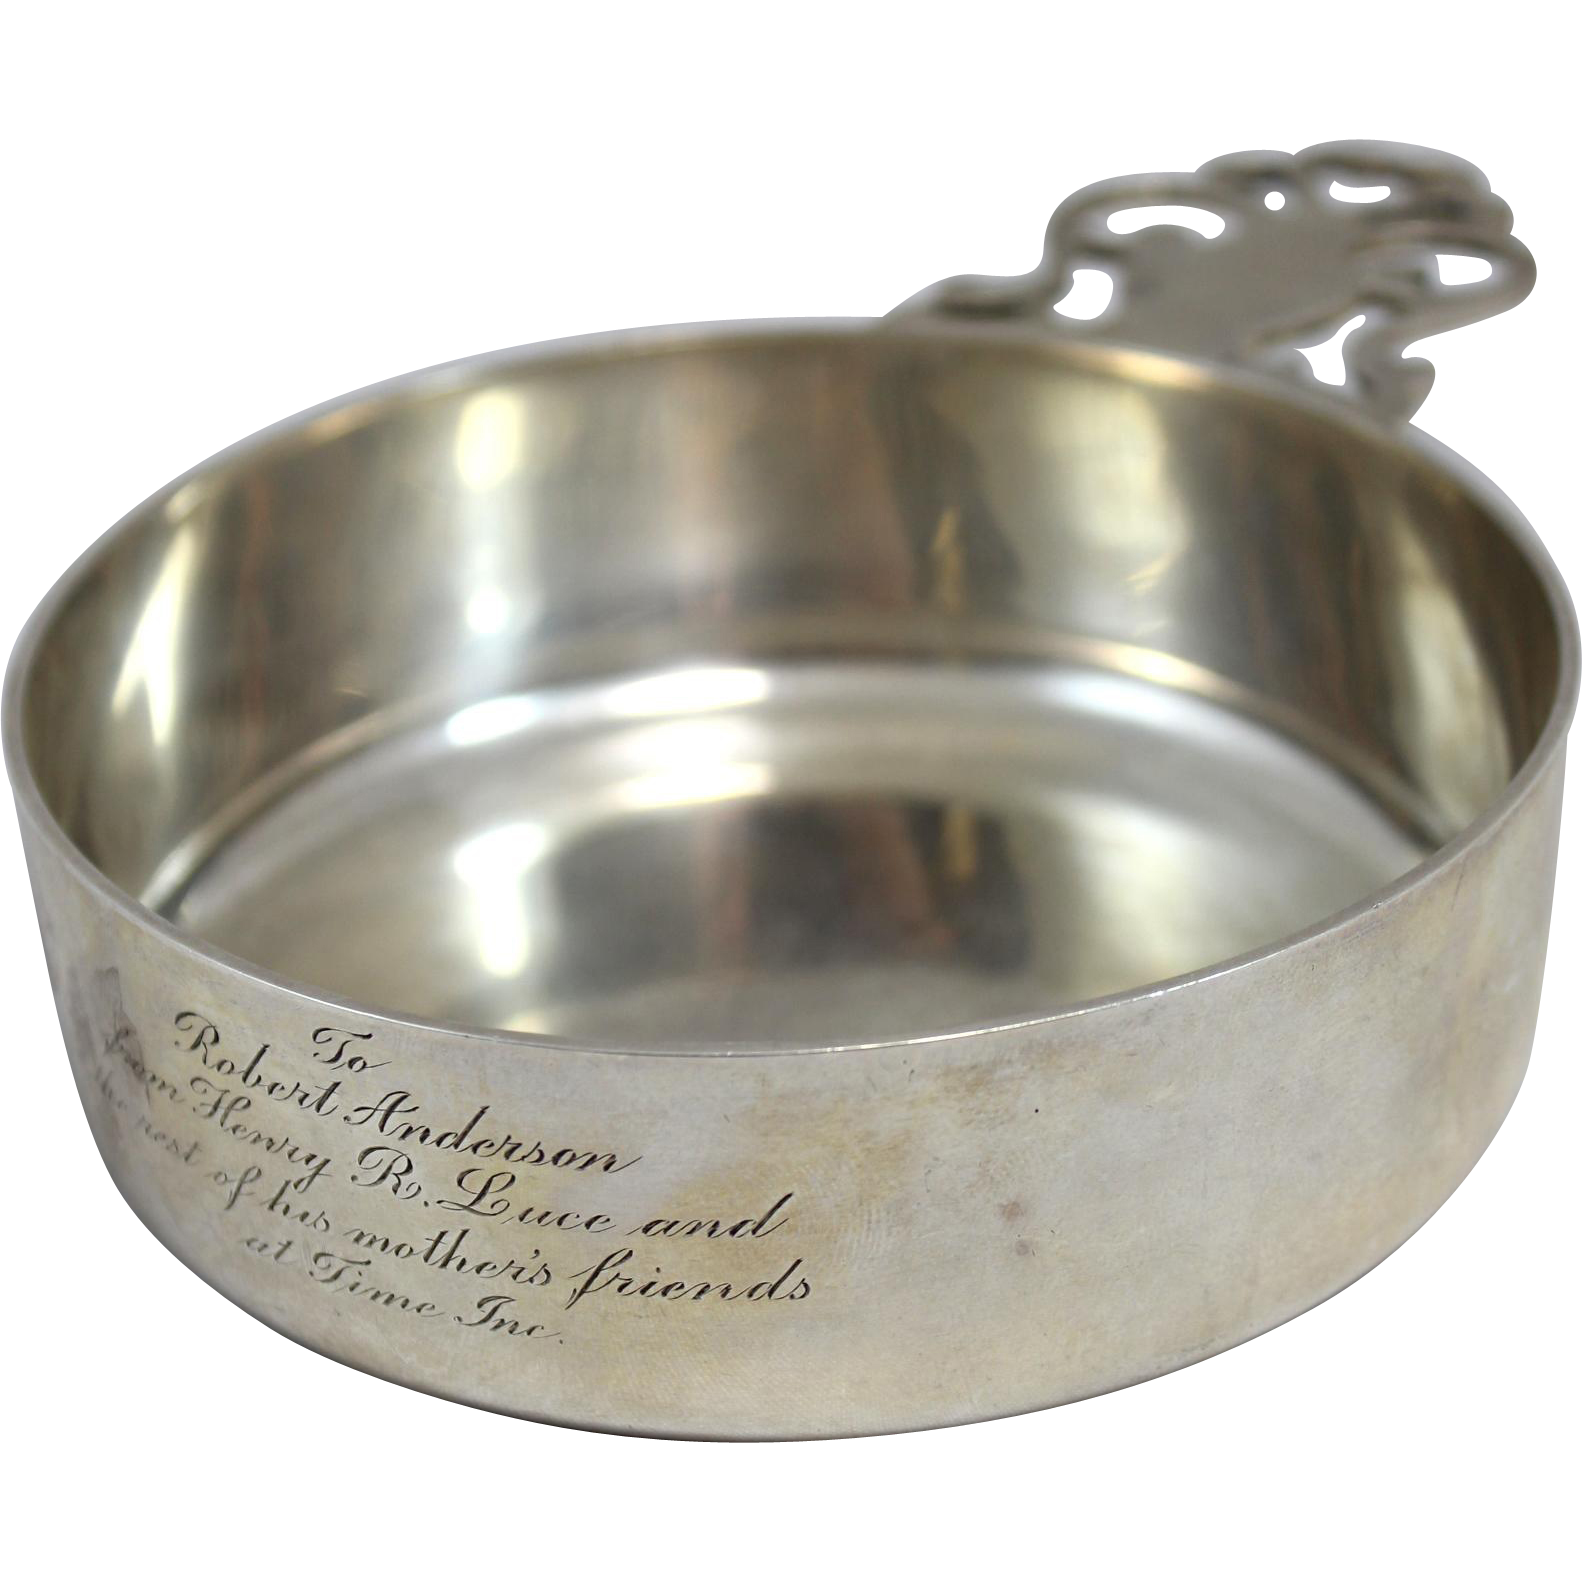 Tiffany & Co Sterling Silver Porringer - A Time Inc. Gift to Robert Anderson from Henry R. Luce